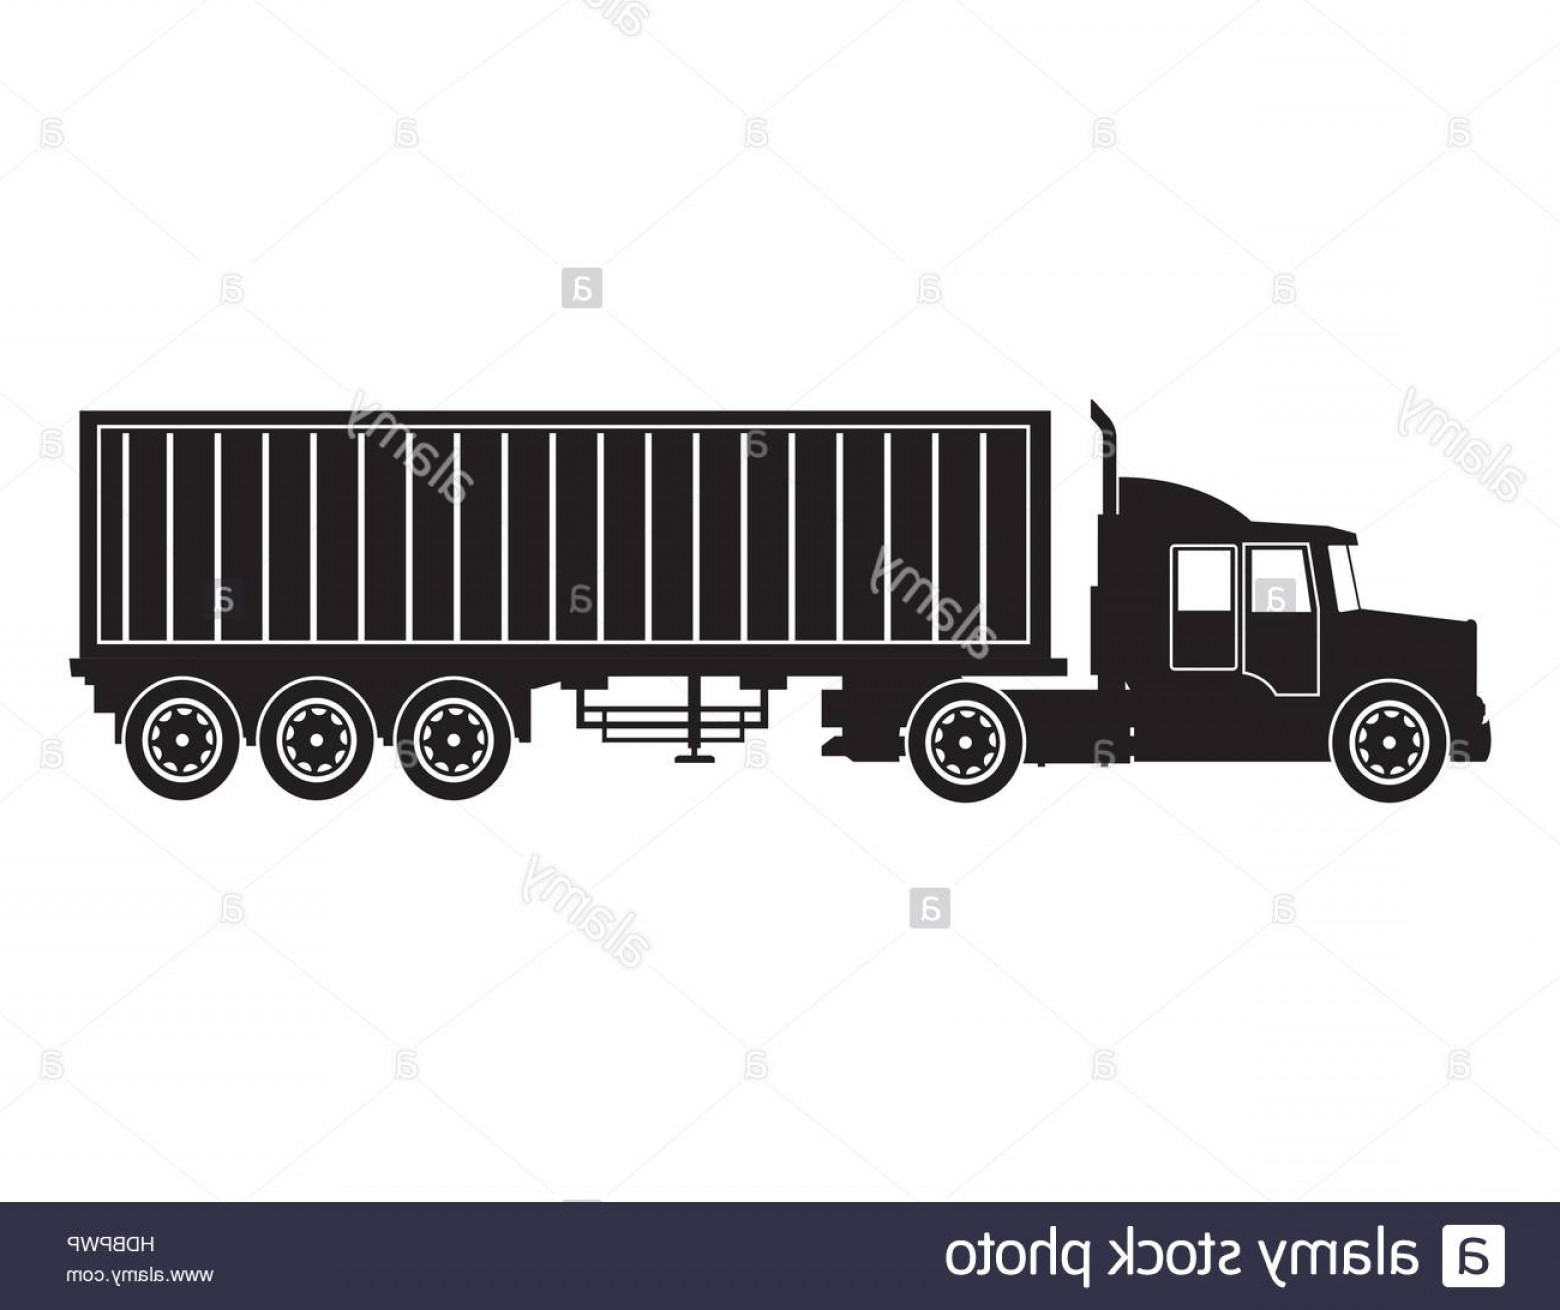 Vector Truck And Trailer Hauling: Stock Photo Silhouette Truck Trailer Container Delivery Transport